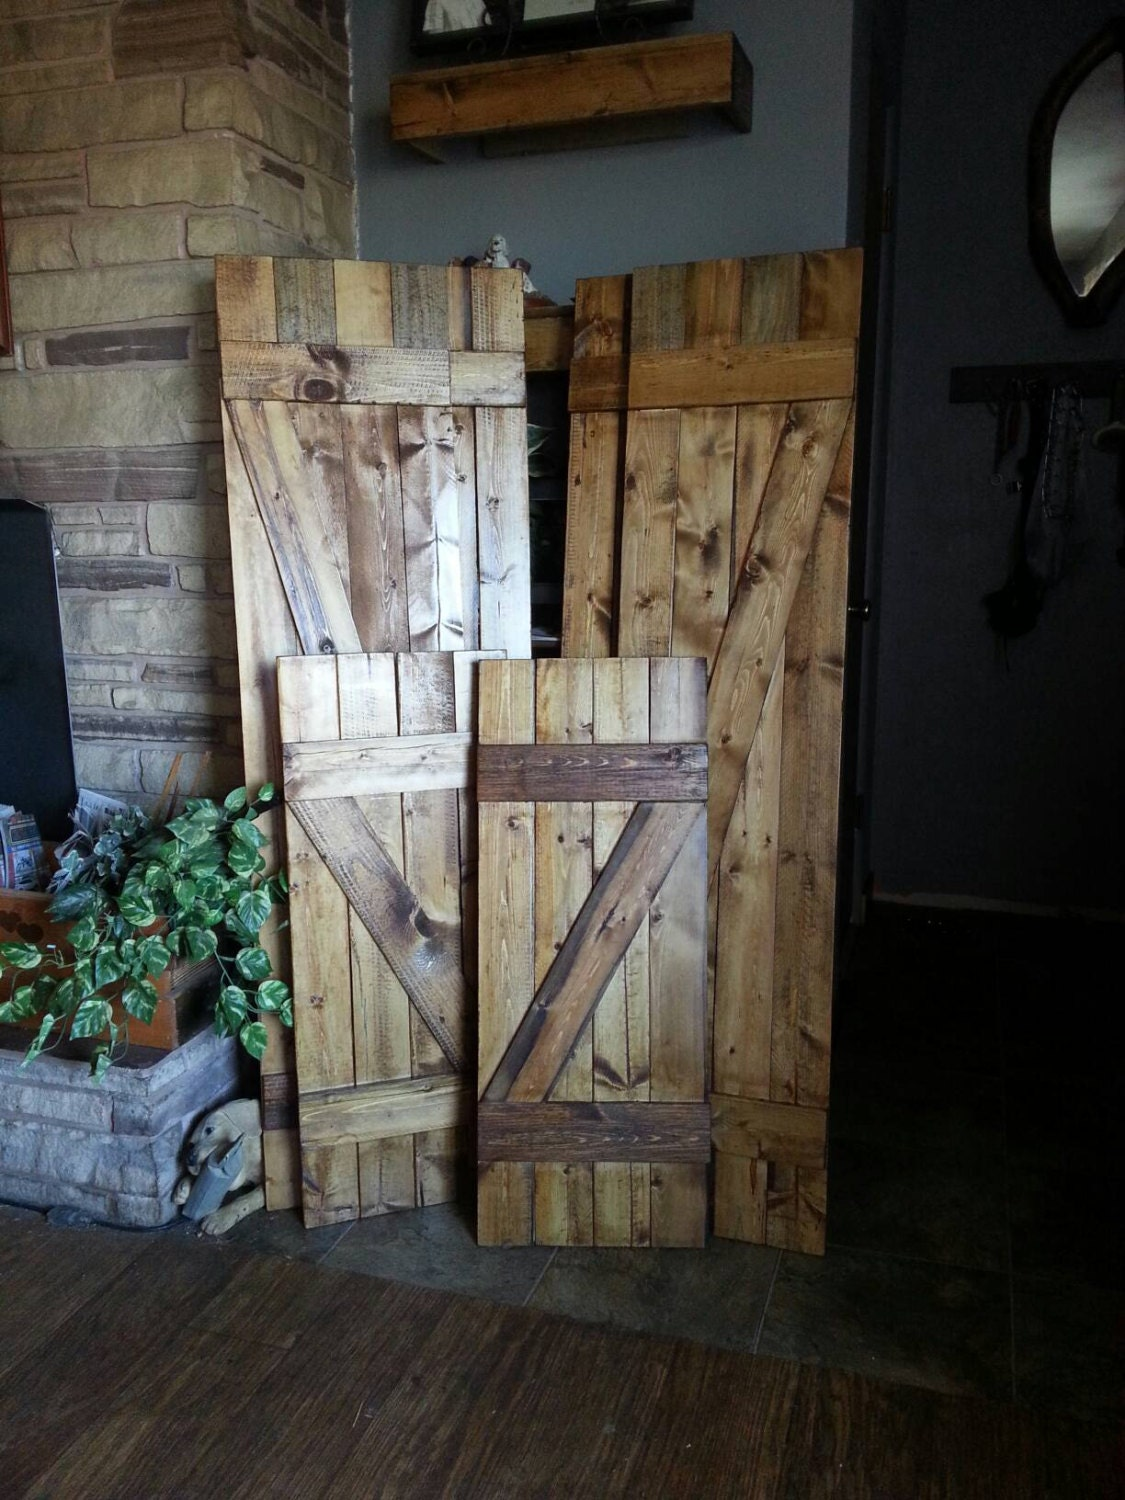 Z Bar Rustic Wood Shutters   24 Decorative Shutters   Window Shutters    Wall Shutters   Exterior Or Interior Shutters   Rustic Home Decor